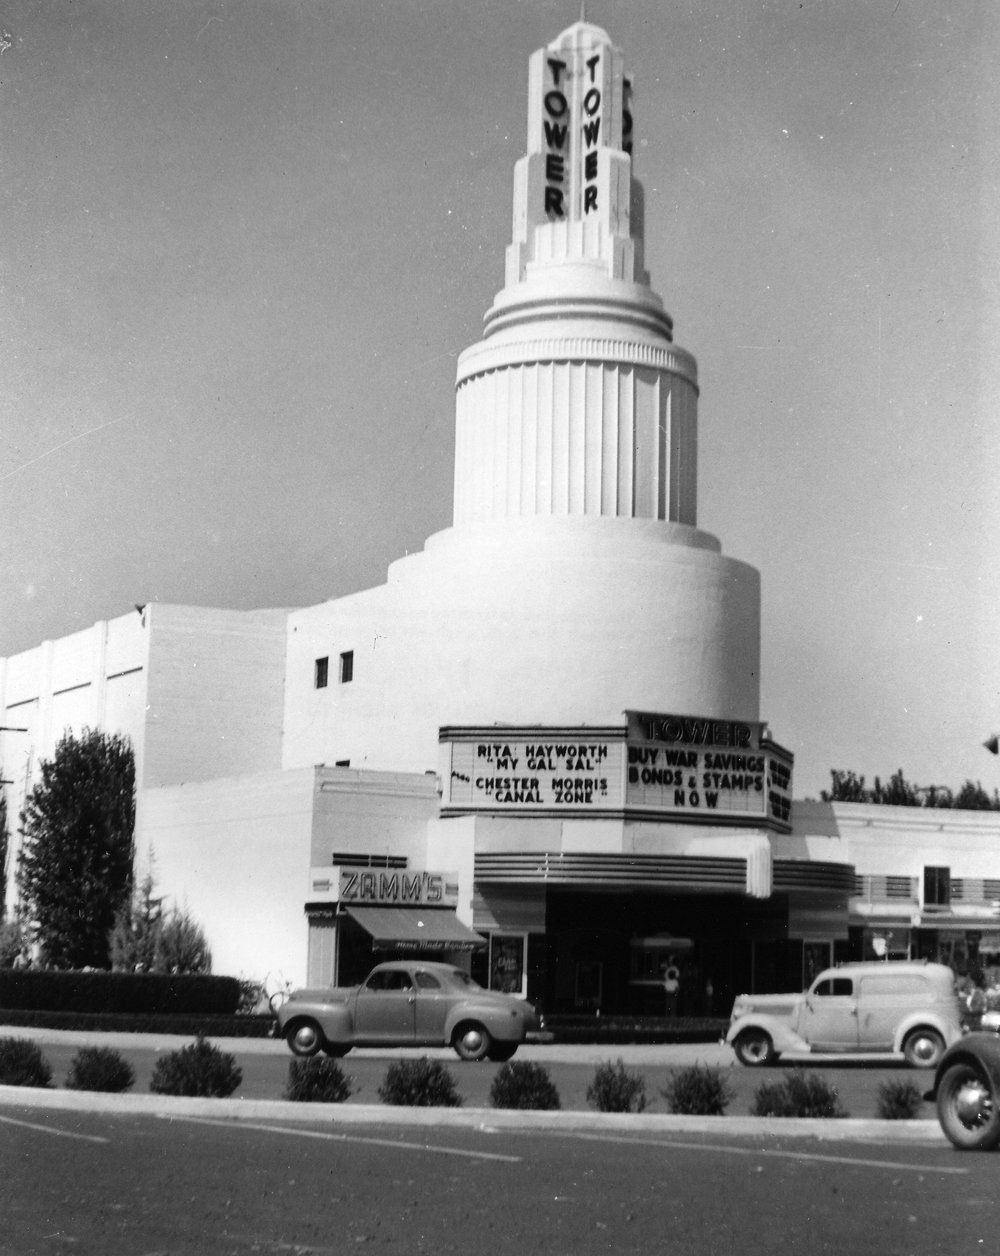 Tower Sacramento 1942 - From the Collection of Jack Tilmany